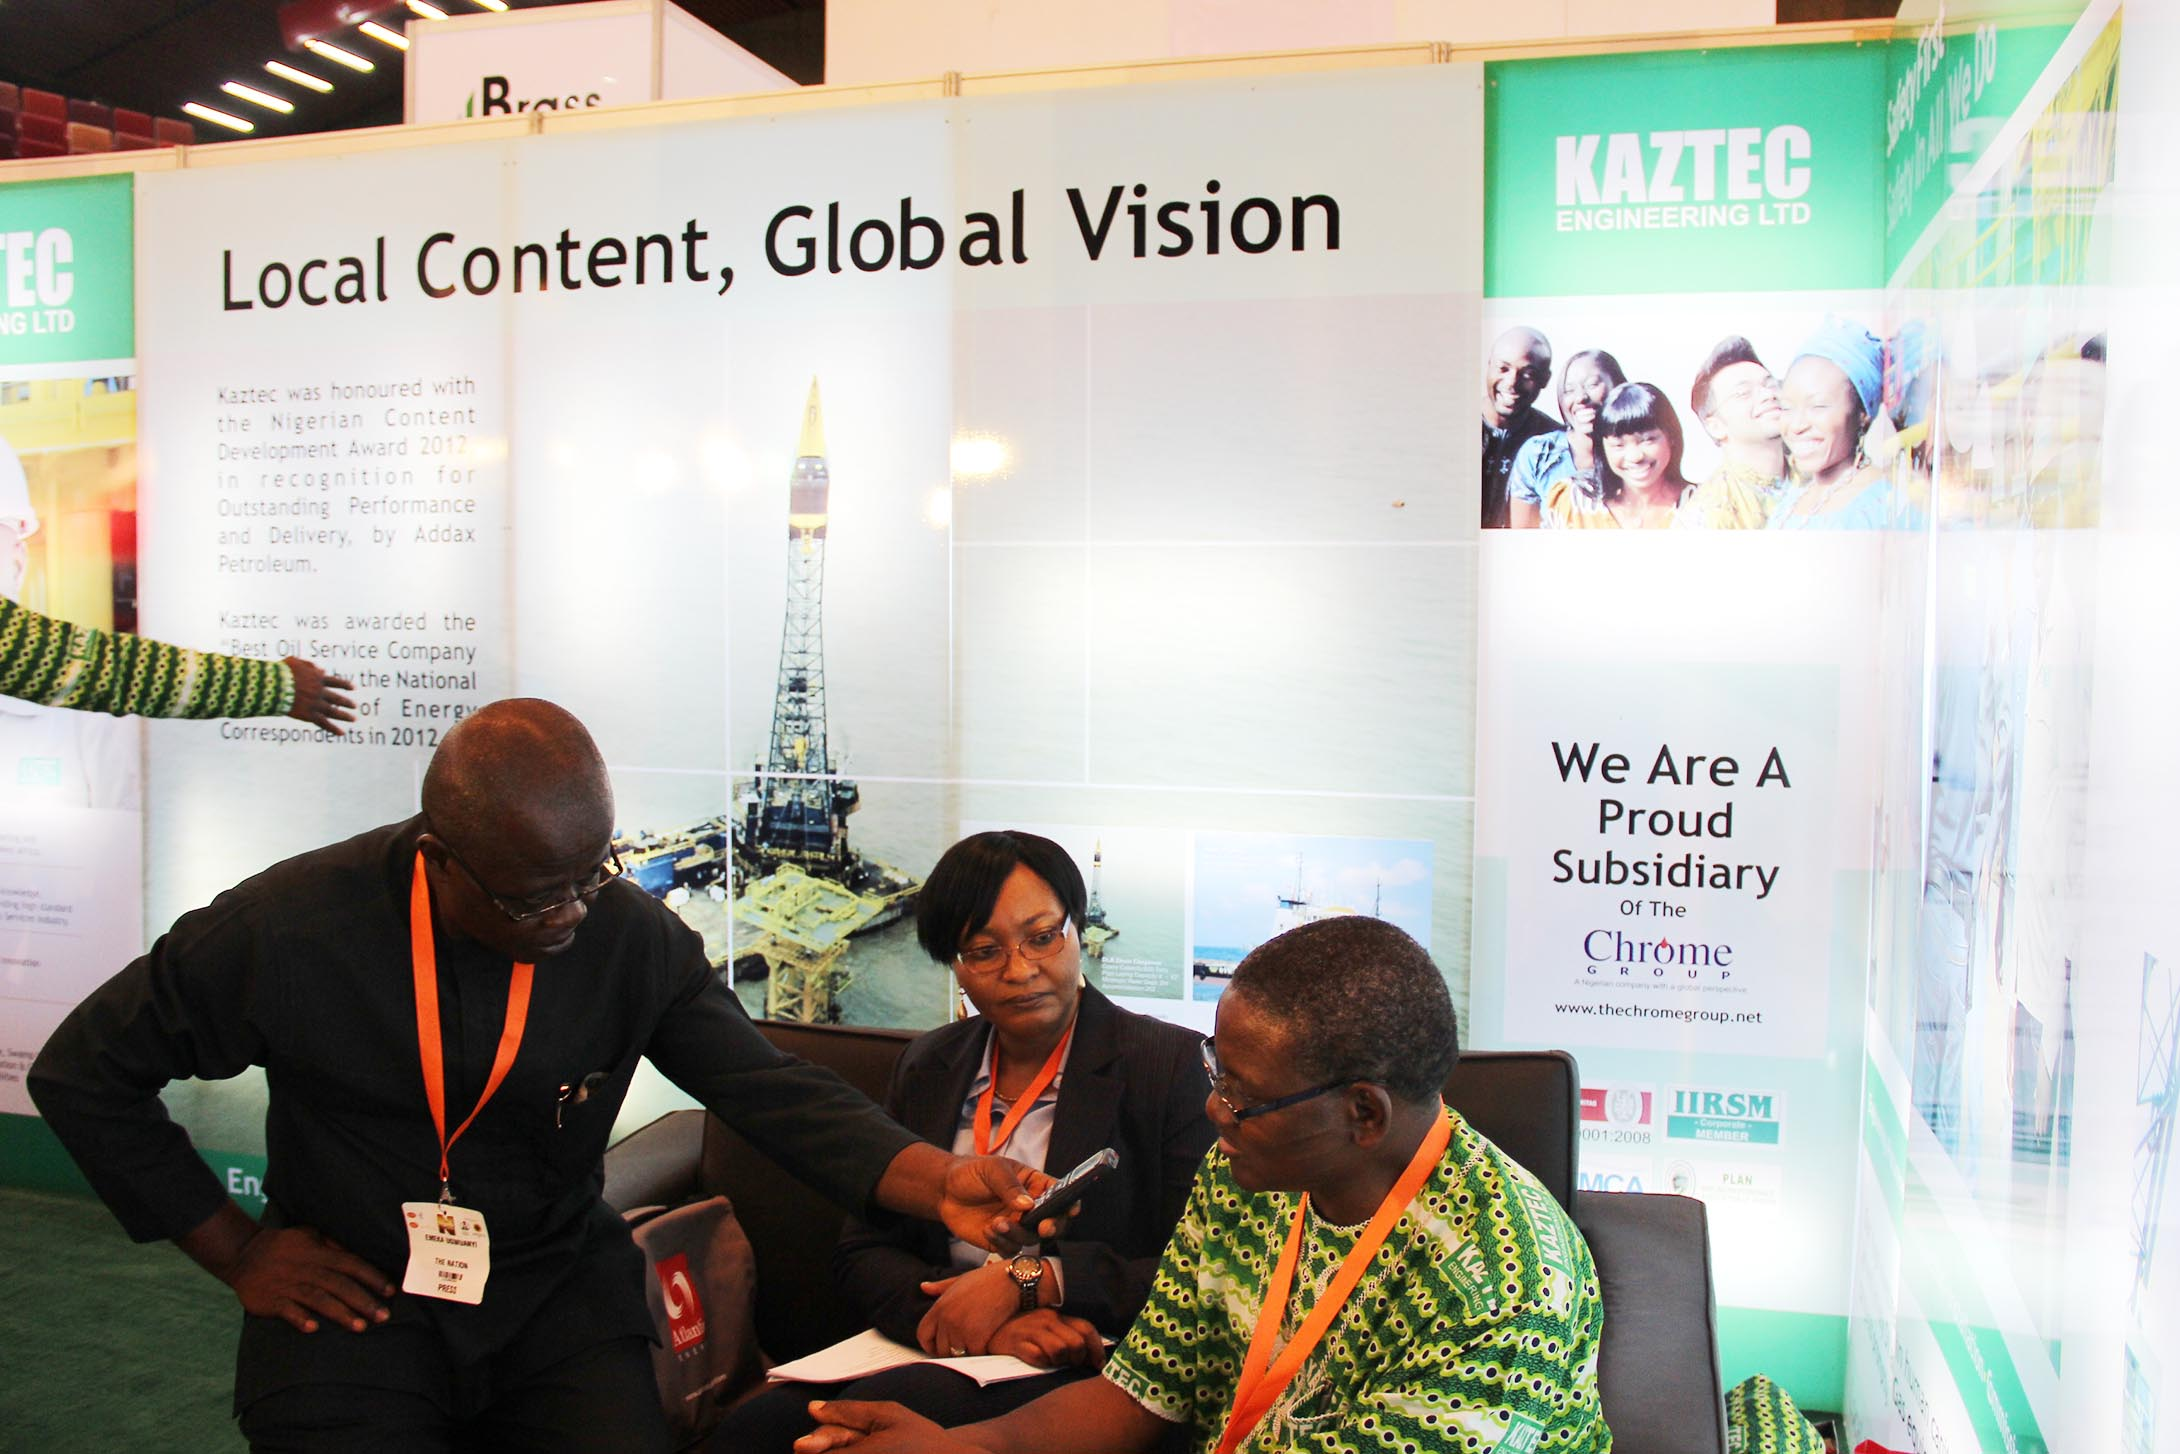 Kaztec Engineering Ltd. at Nigeria Oil & Gas 2013